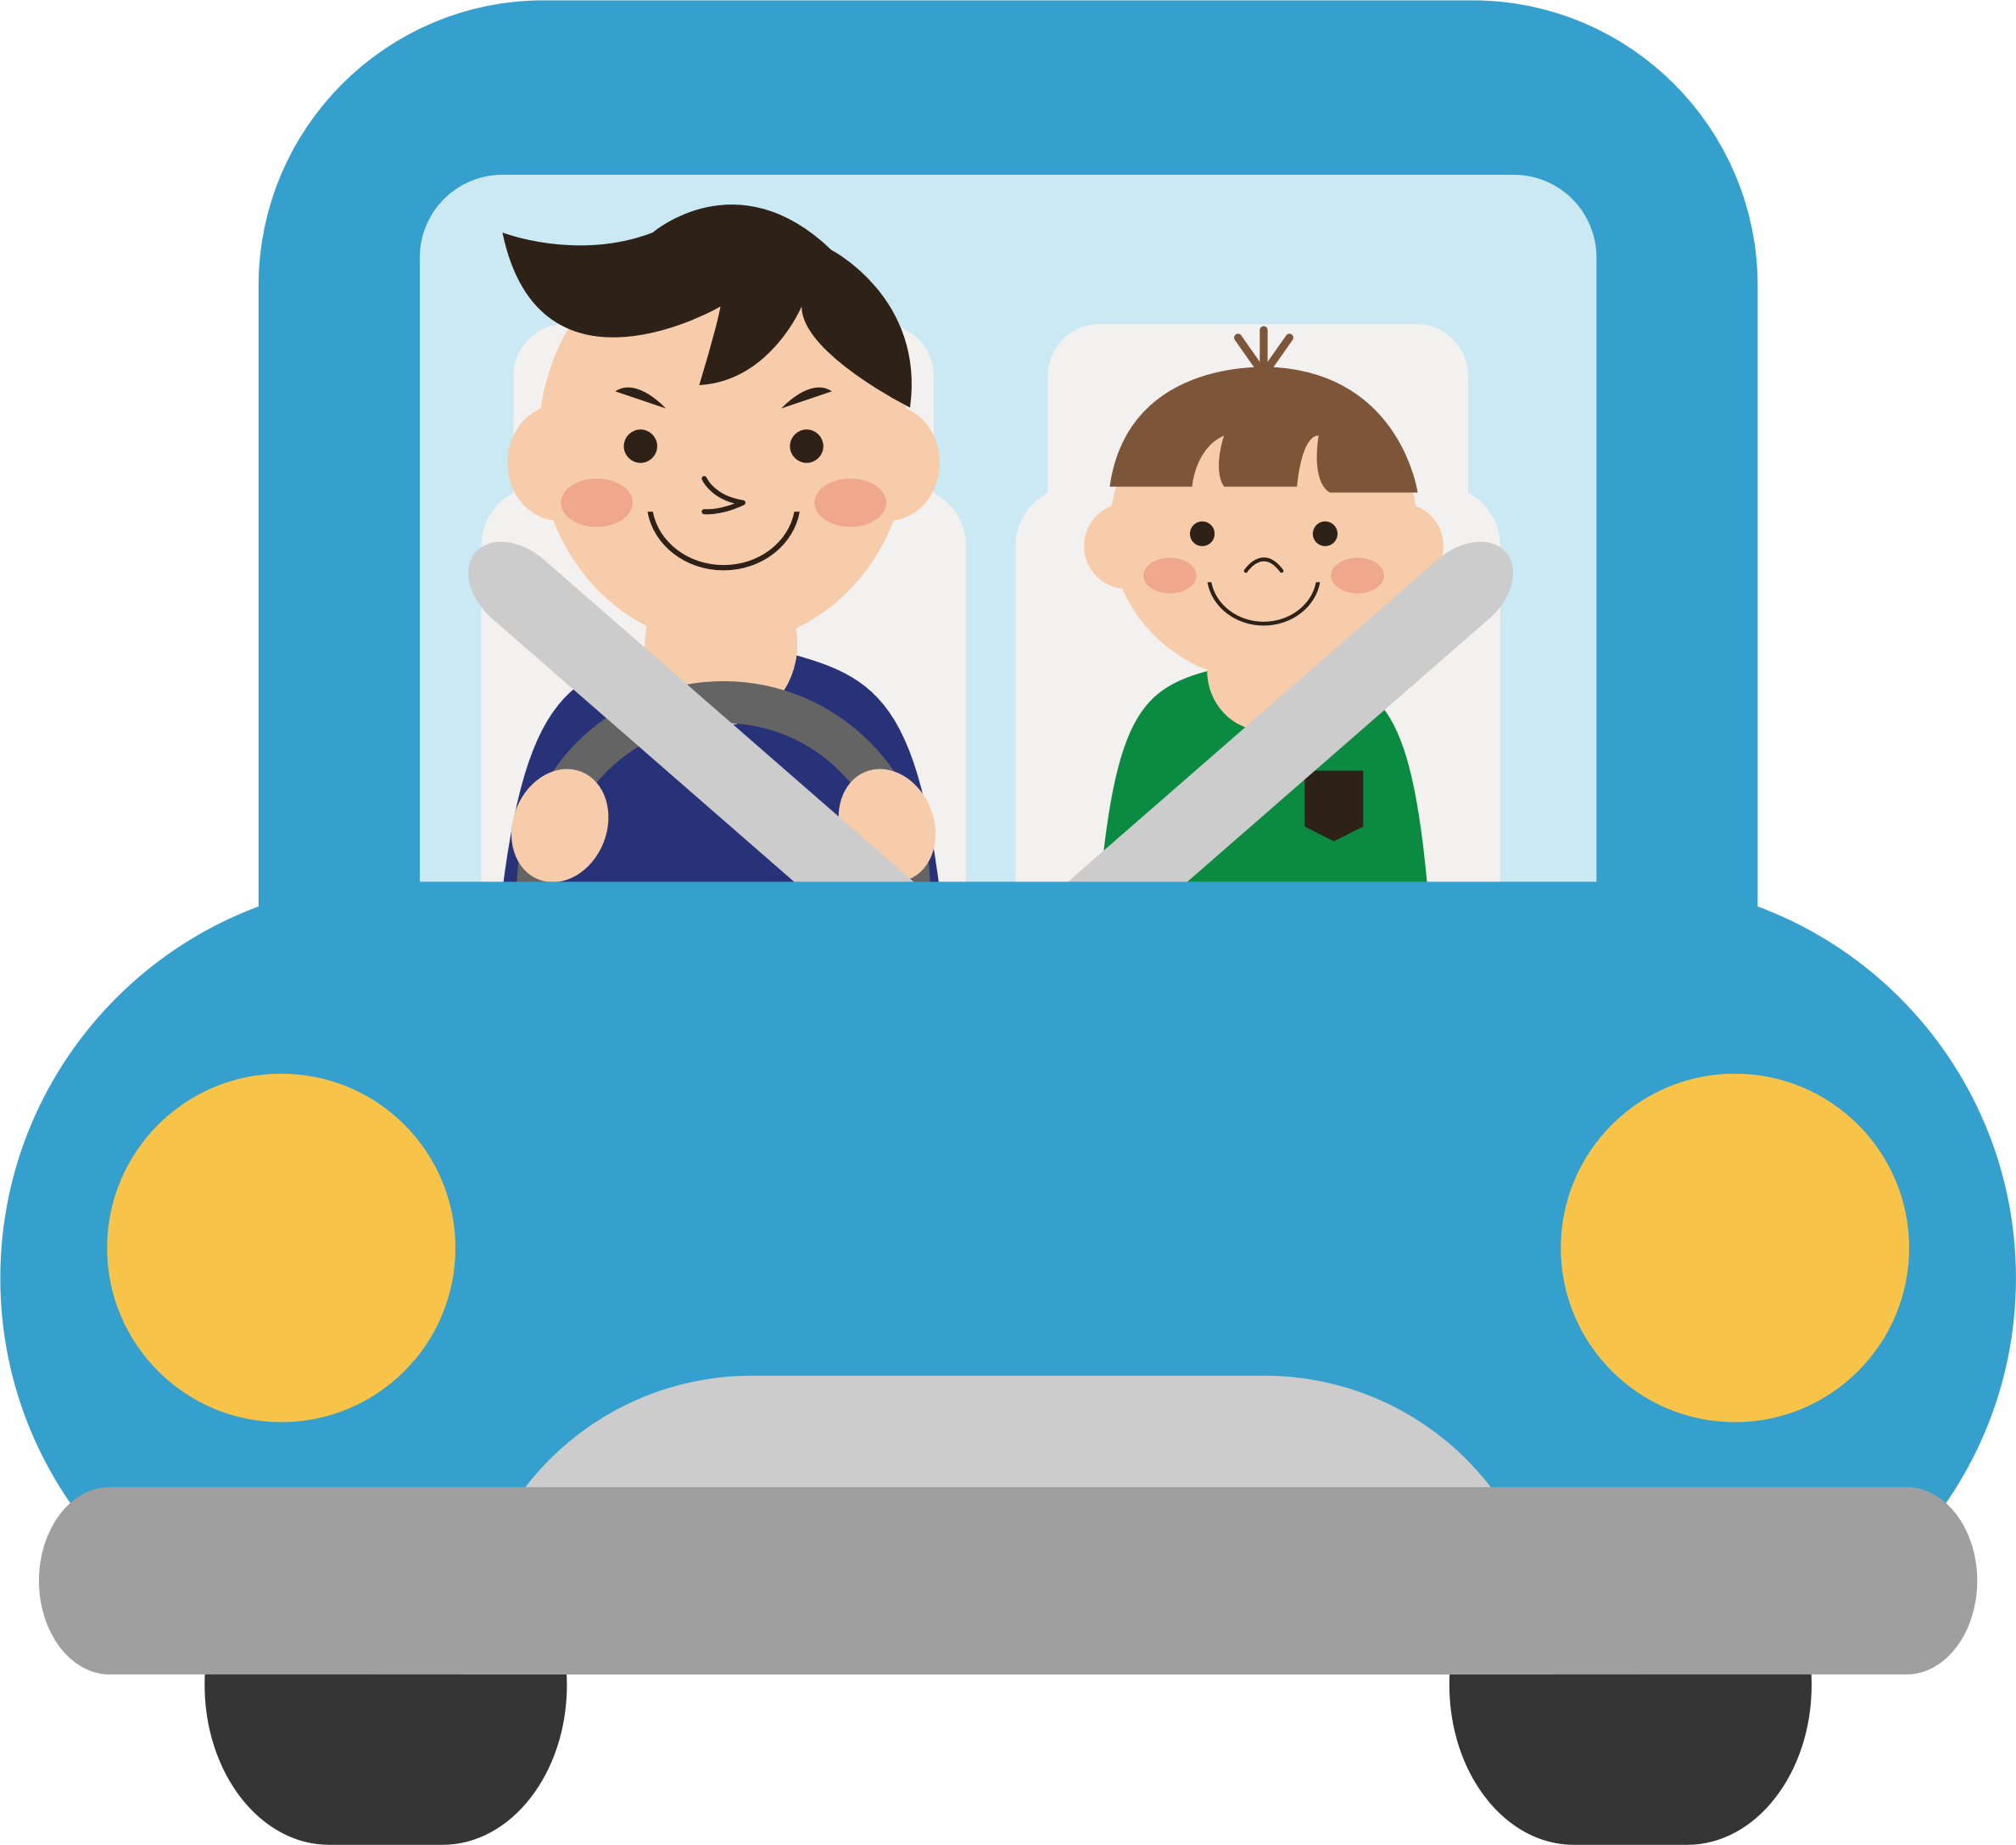 Car ride clipart png freeuse Clipart - Car Ride (#4) png freeuse